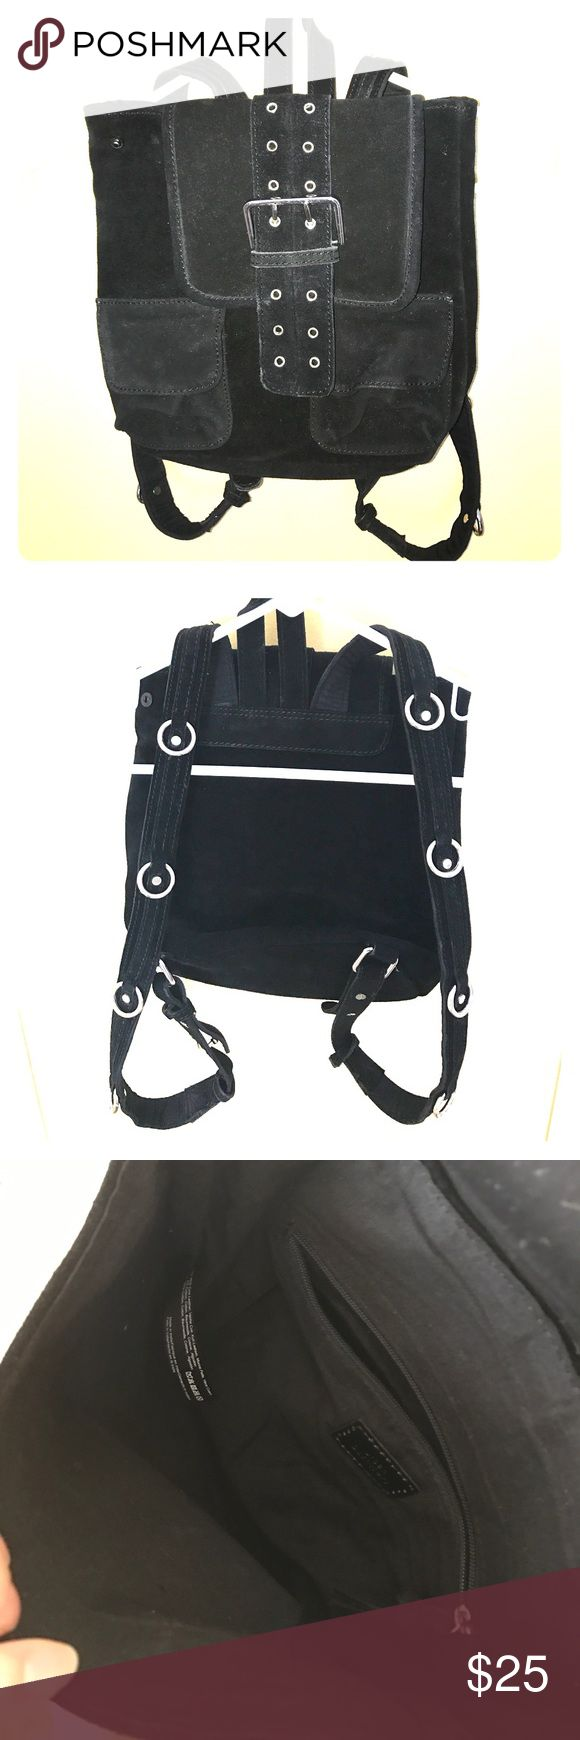 Urban Outfitters: black leather back pack Barely used black leather backpack with silver details along straps and front. Body: 95% cow leather 5% cotton.  Inside: 100% cotton. Perfect for festivals or a night out! Urban Outfitters Bags Backpacks